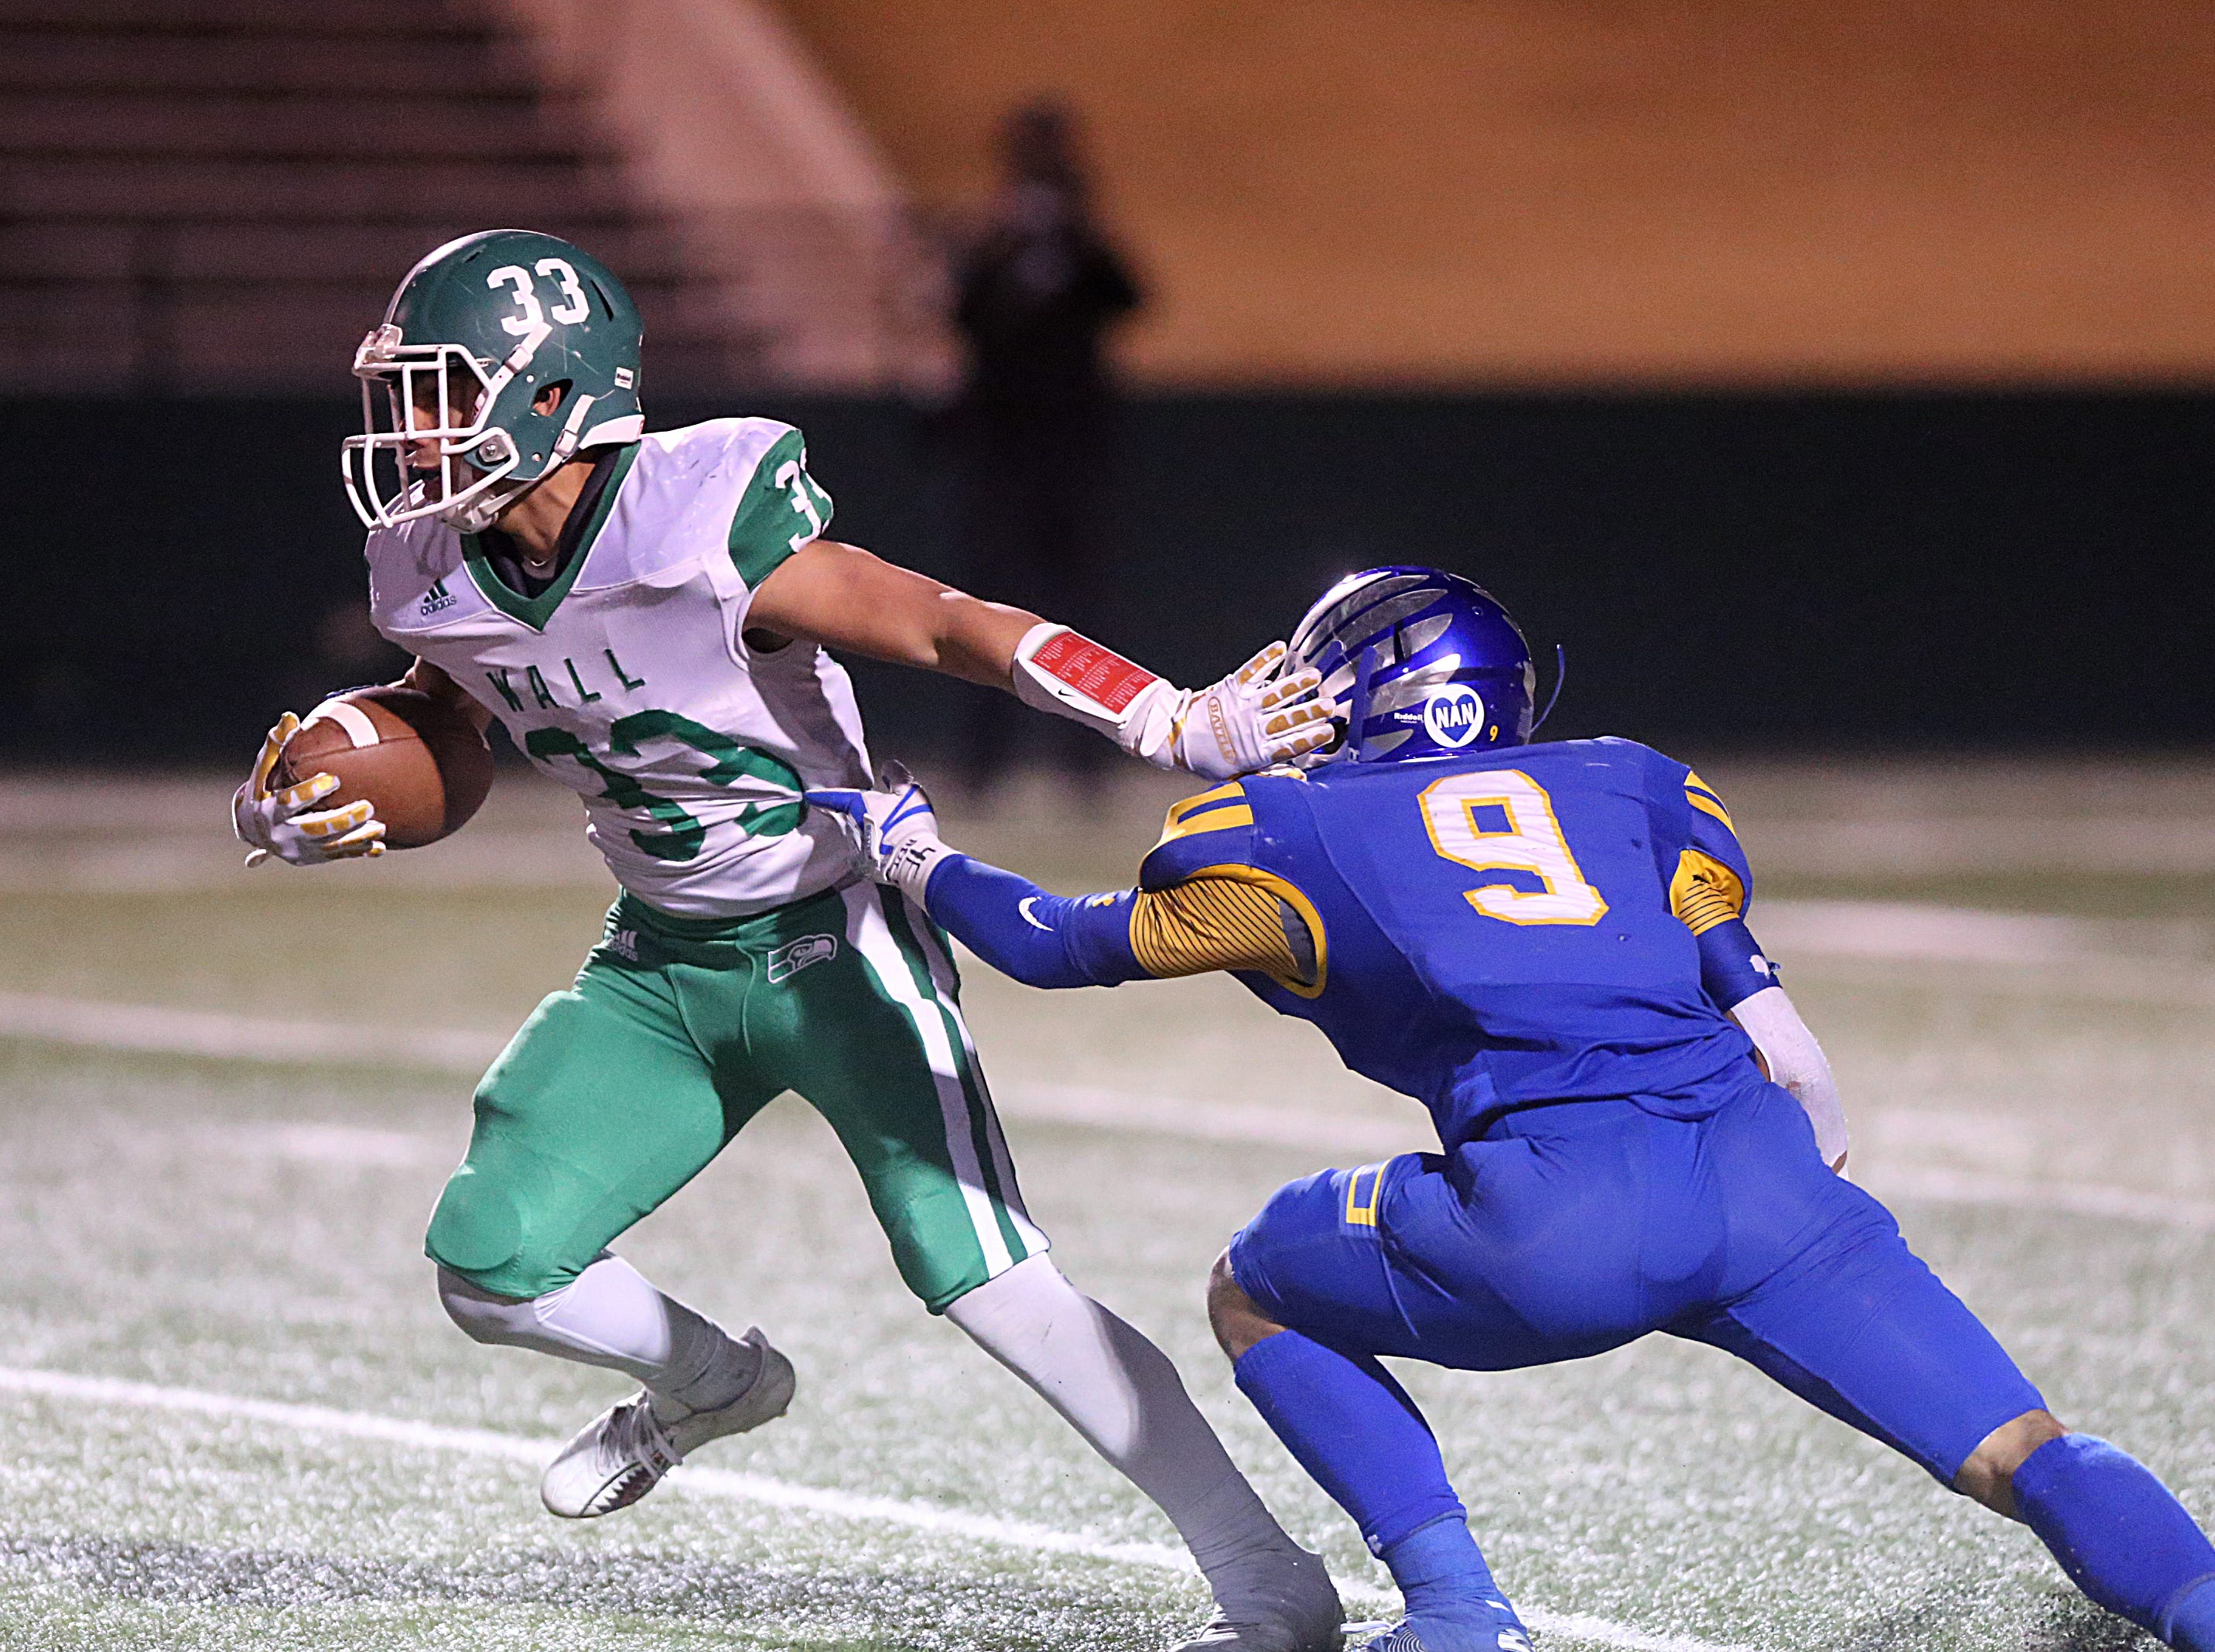 Wall's Chase Rios (#33) pushes past Brock's Kaden Hendrix (#9) Friday, Nov. 30, 2018, during their game at Shotwell Stadium in Abilene. Wall lost 13 to 35.